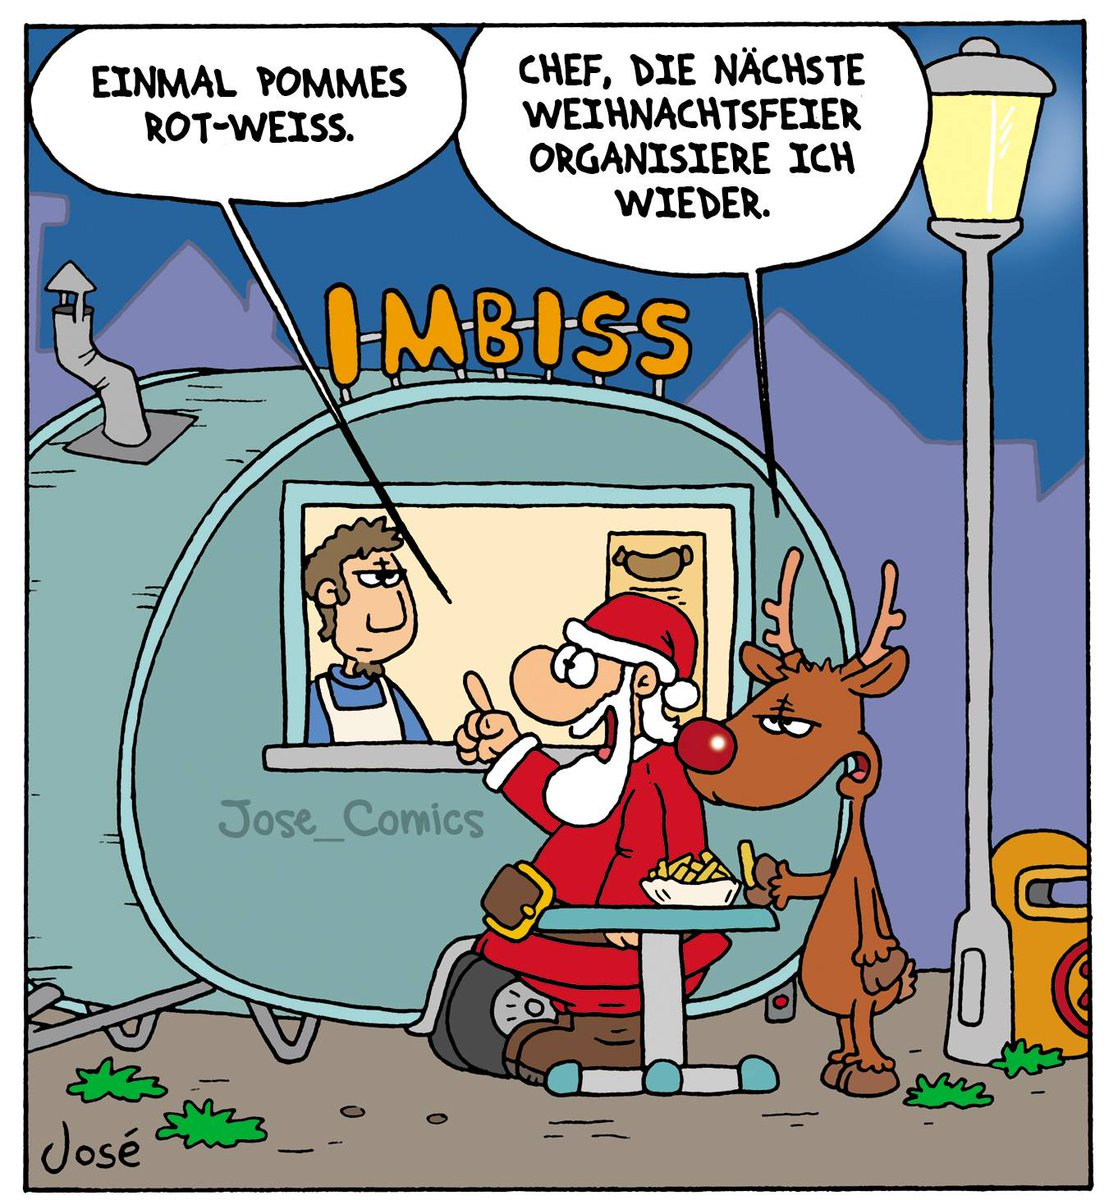 Weihnachtsfeier Cartoon.The Rolling Stones On Twitter Grab Yourself Or Someone Else Some